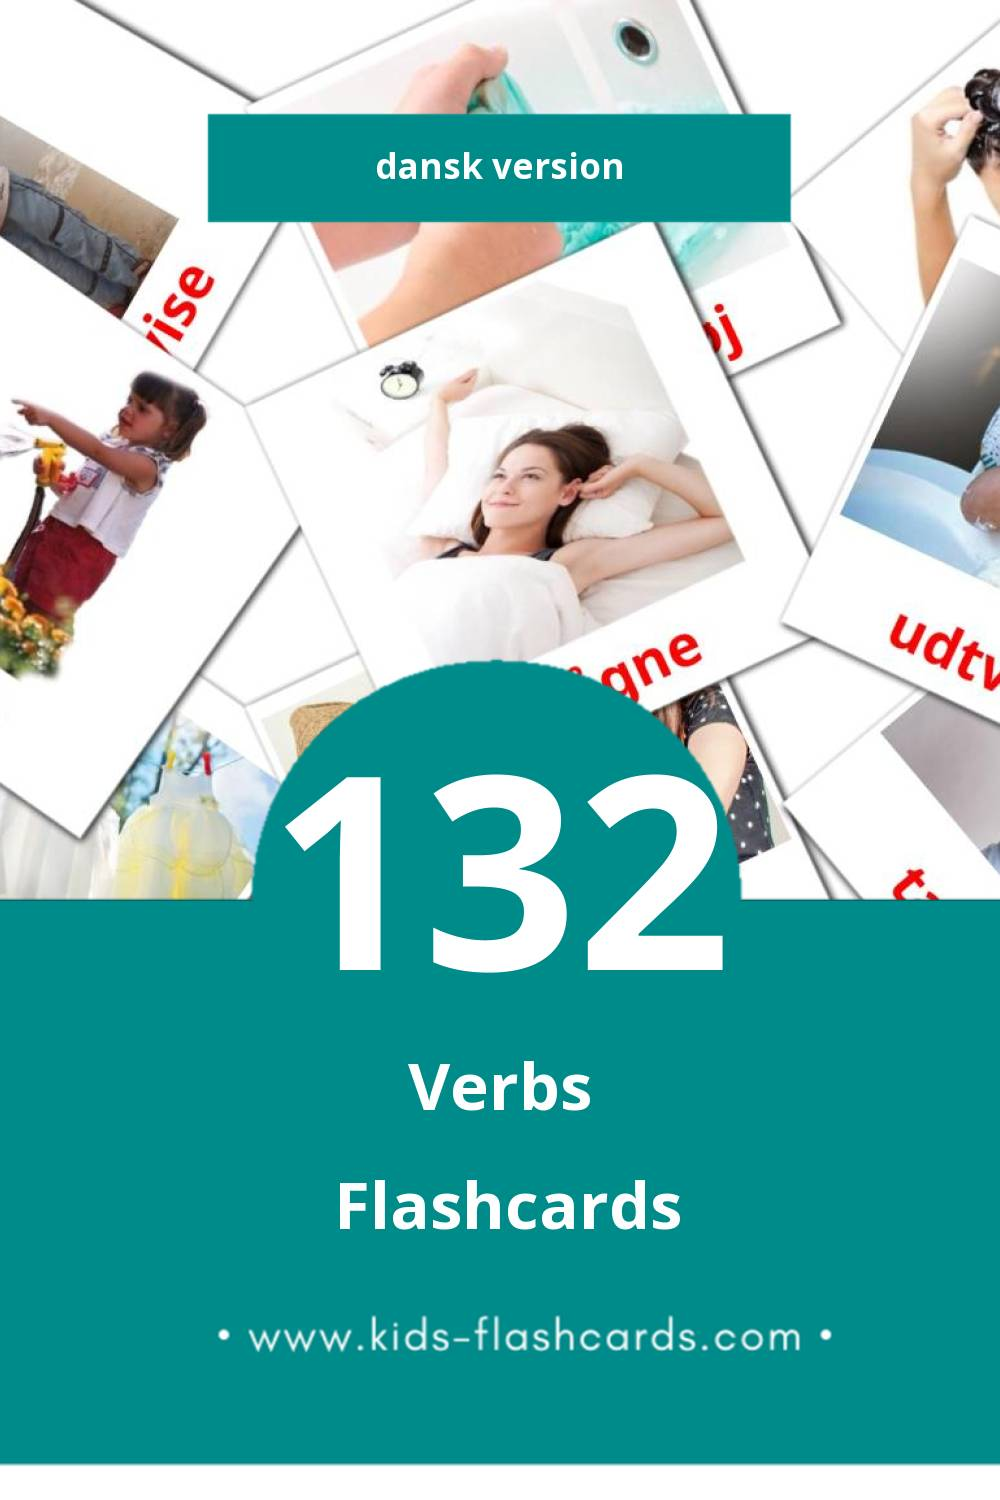 Visual Verber Flashcards for Toddlers (133 cards in Dansk)